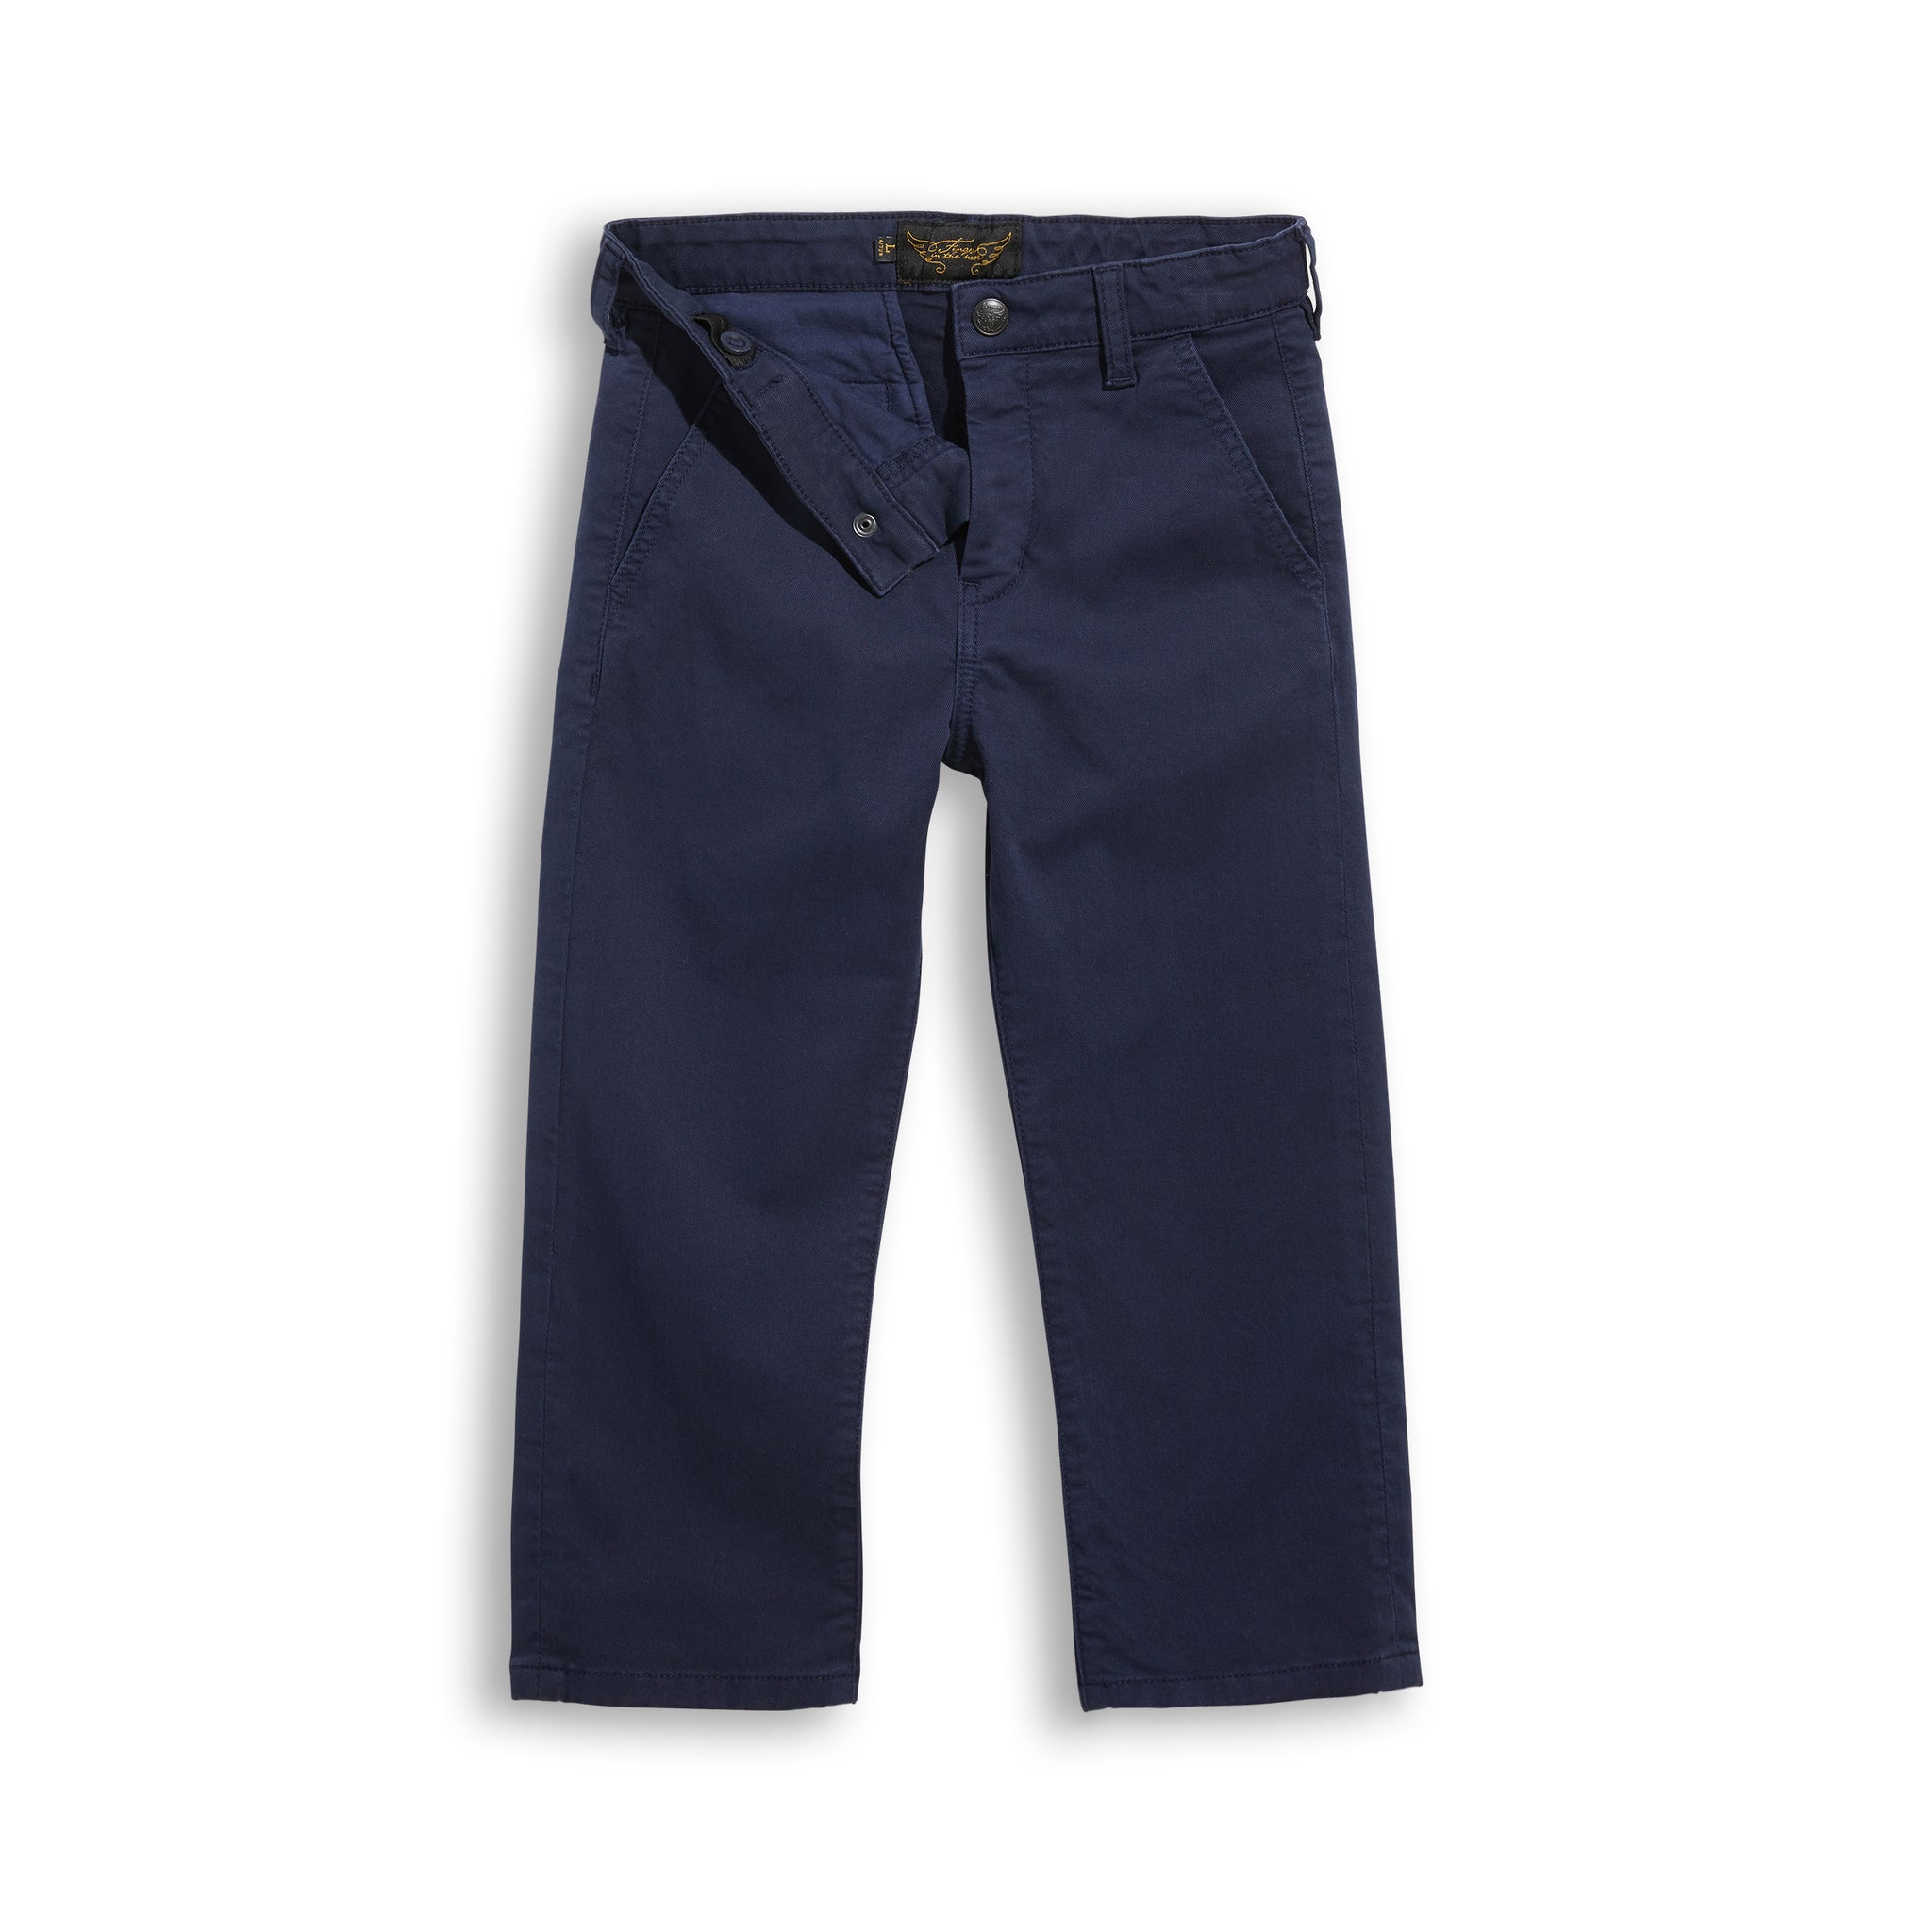 PORTMAN Sailor Blue - Chino Fit Pants 3